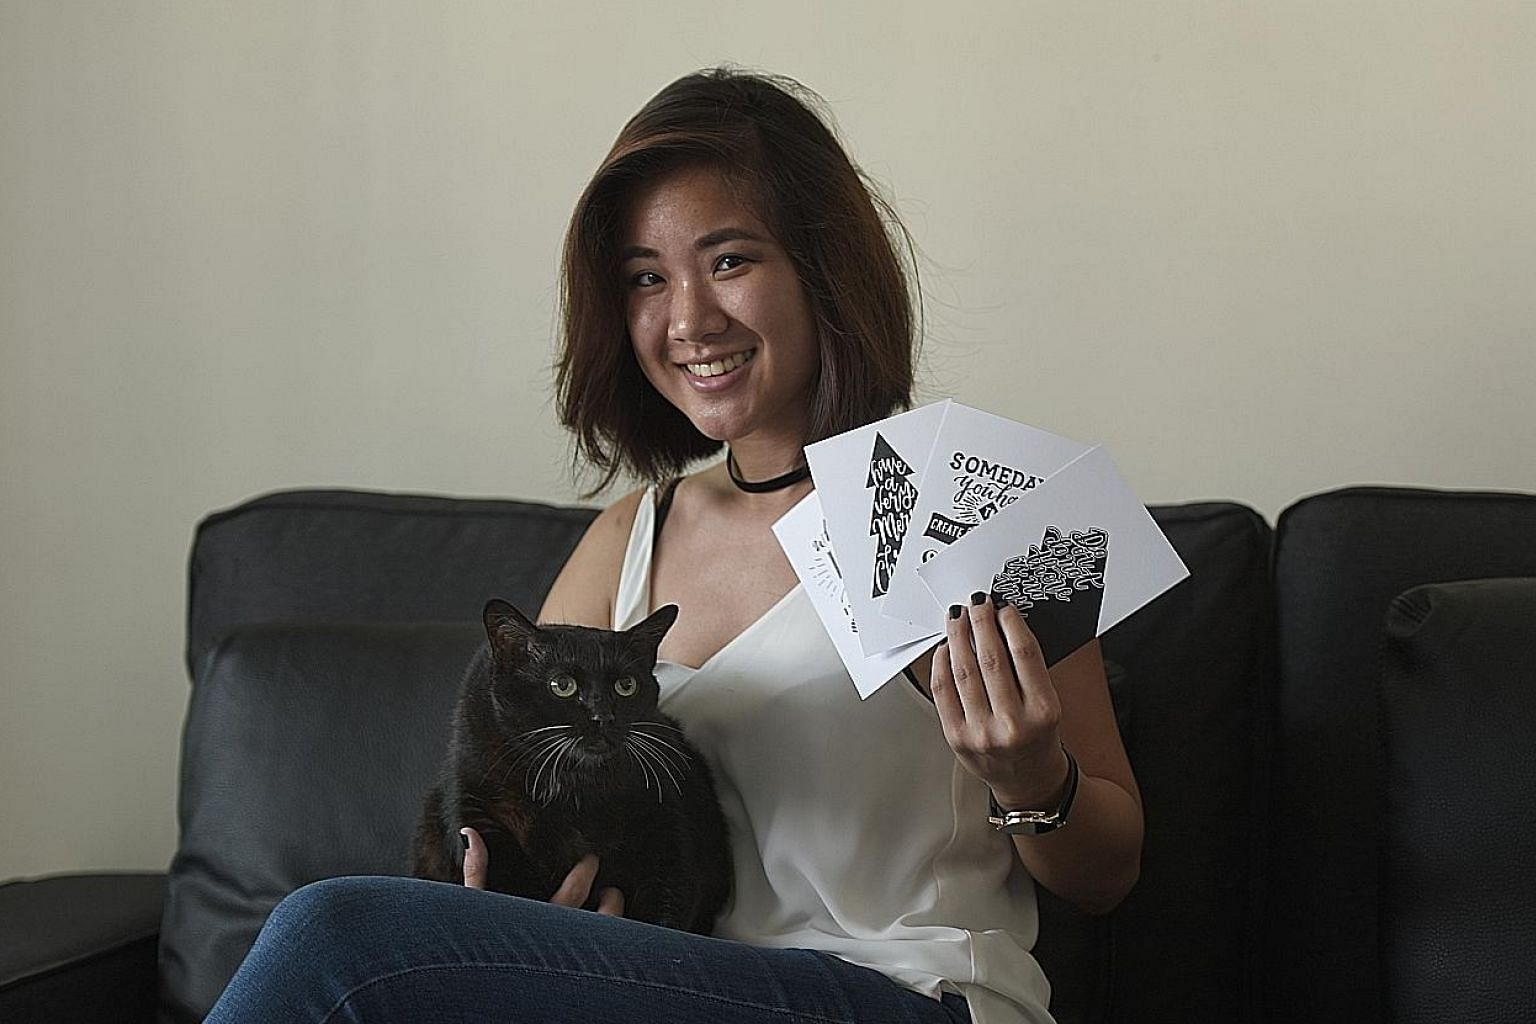 Ms Chew with one of the two cats her family adopted. The 24-year-old hand-letterist, who is selling hand-drawn cards to raise money for Oasis Second Chance Animal Shelter, hopes to raise $500 by this month.